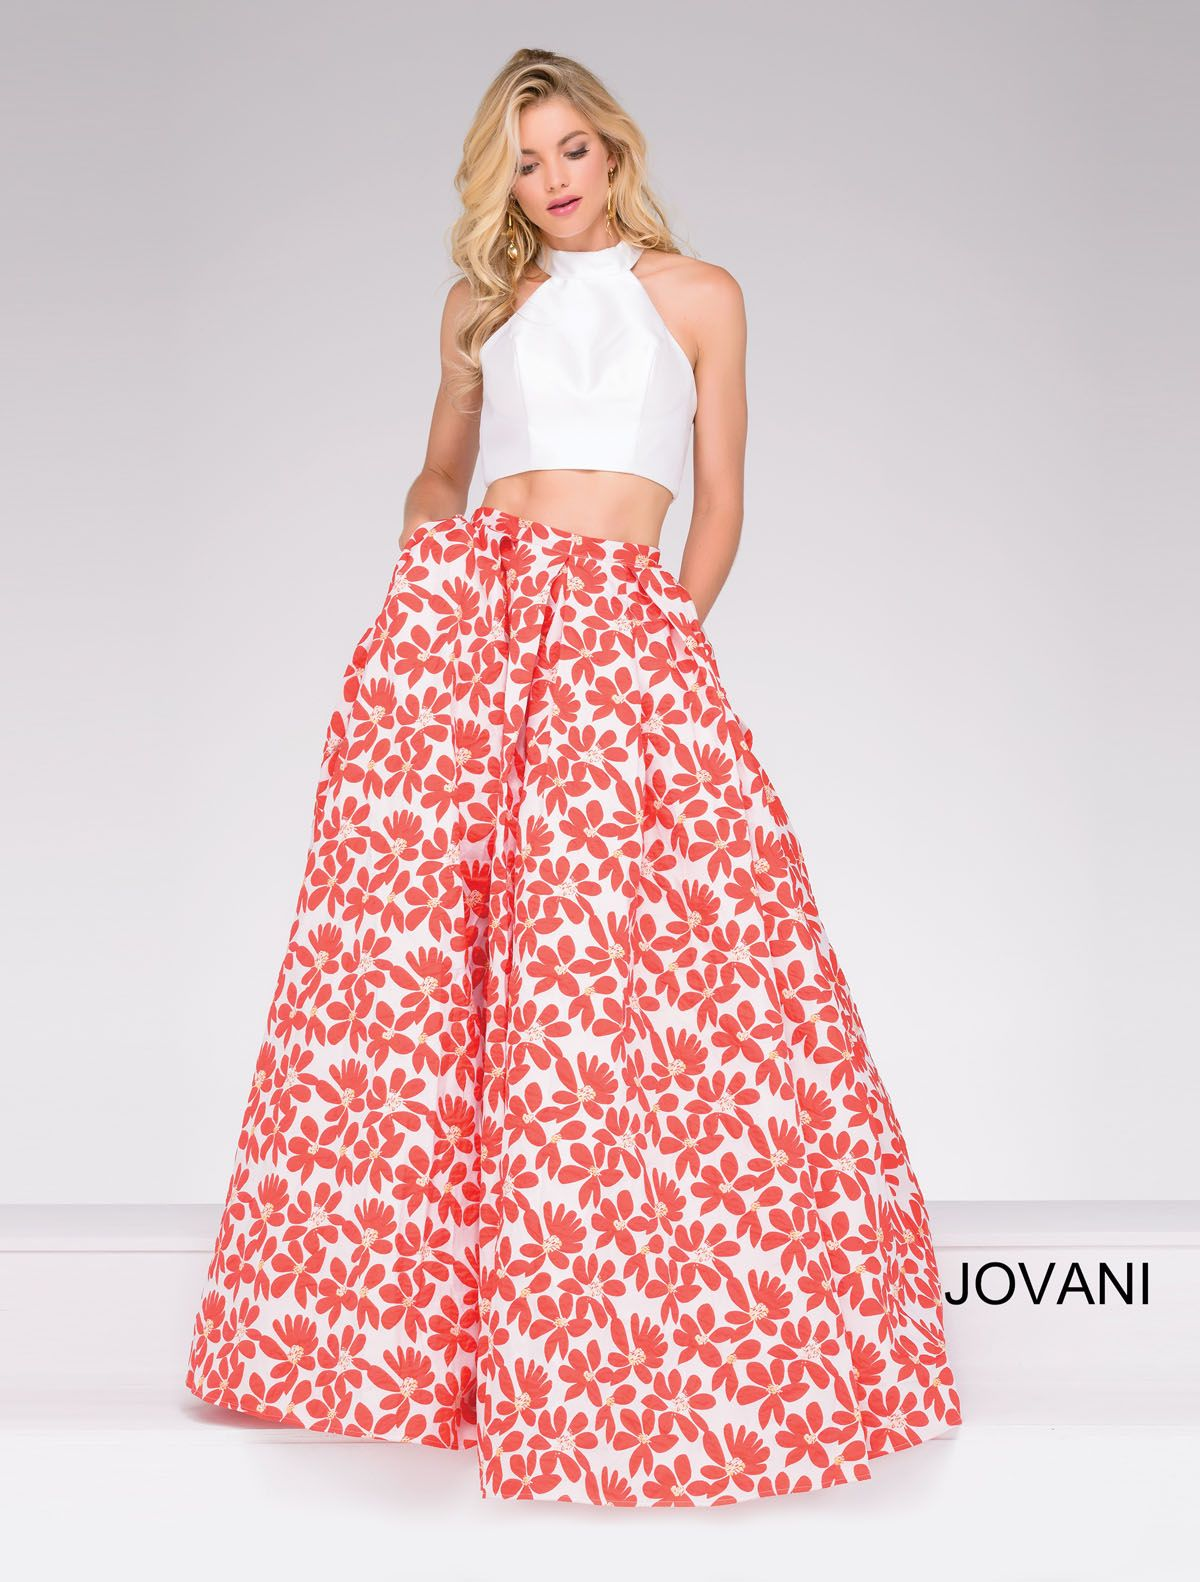 Jovani 48948 - International Prom Association | Jovani Prom Dresses ...